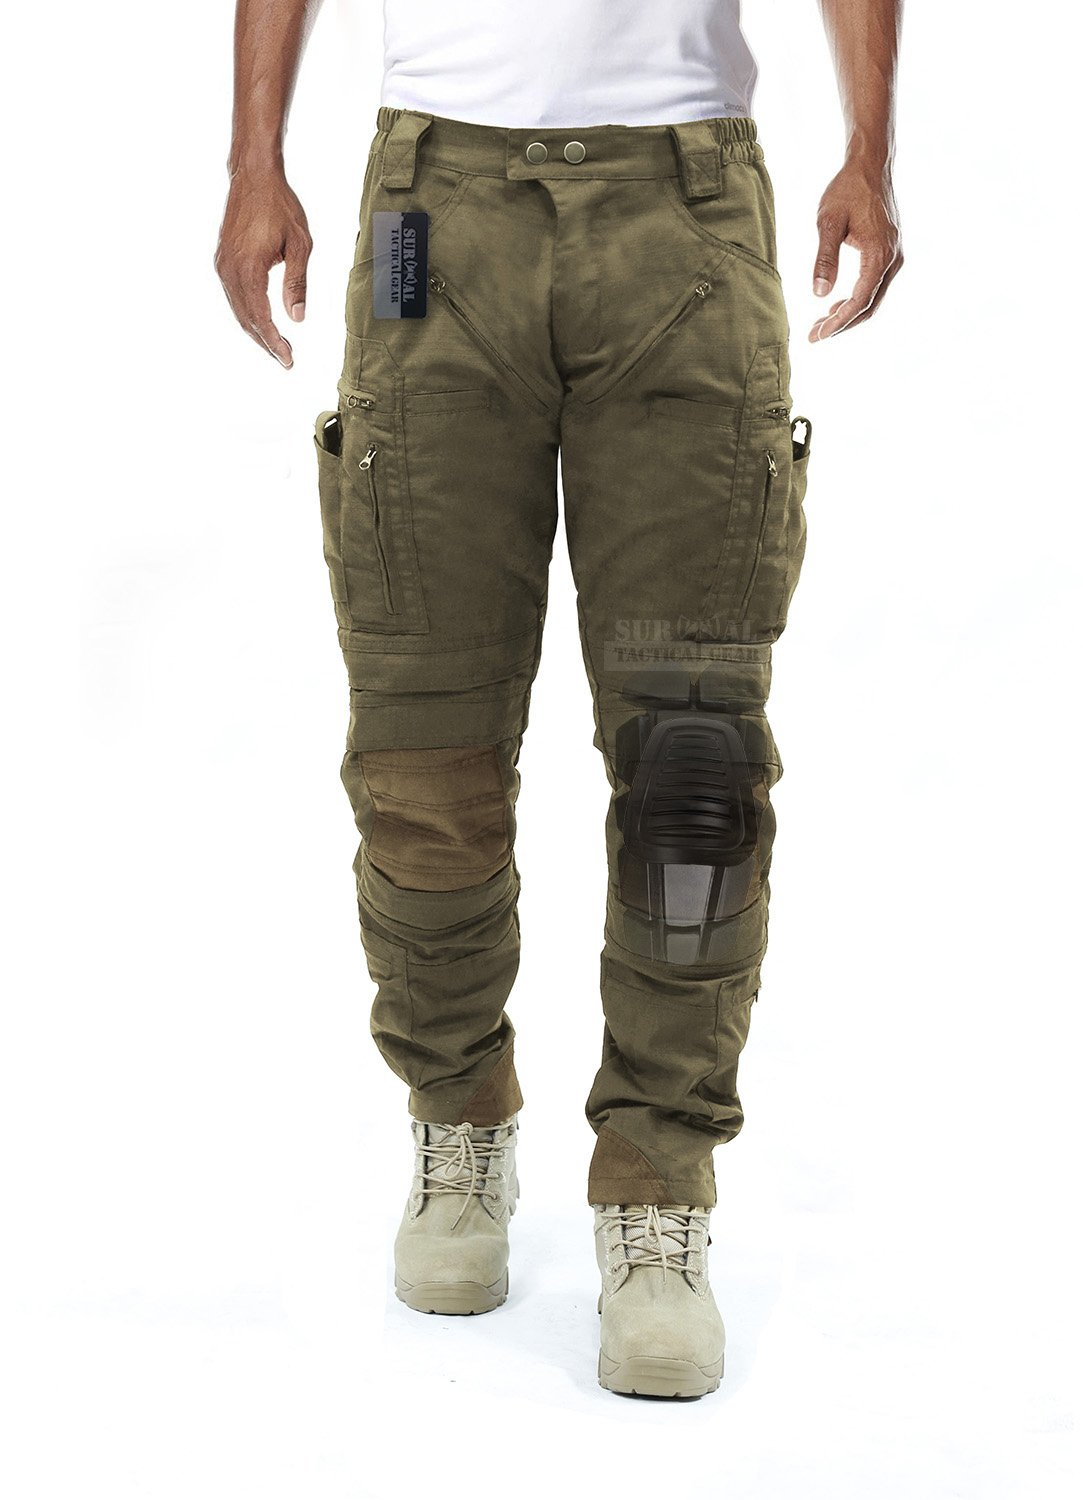 Survival Tactical Gear Men's Airsoft Wargame Tactical Pants with Knee Protection System & Air Circulation System (Tan, L) by Survival Tactical Gear